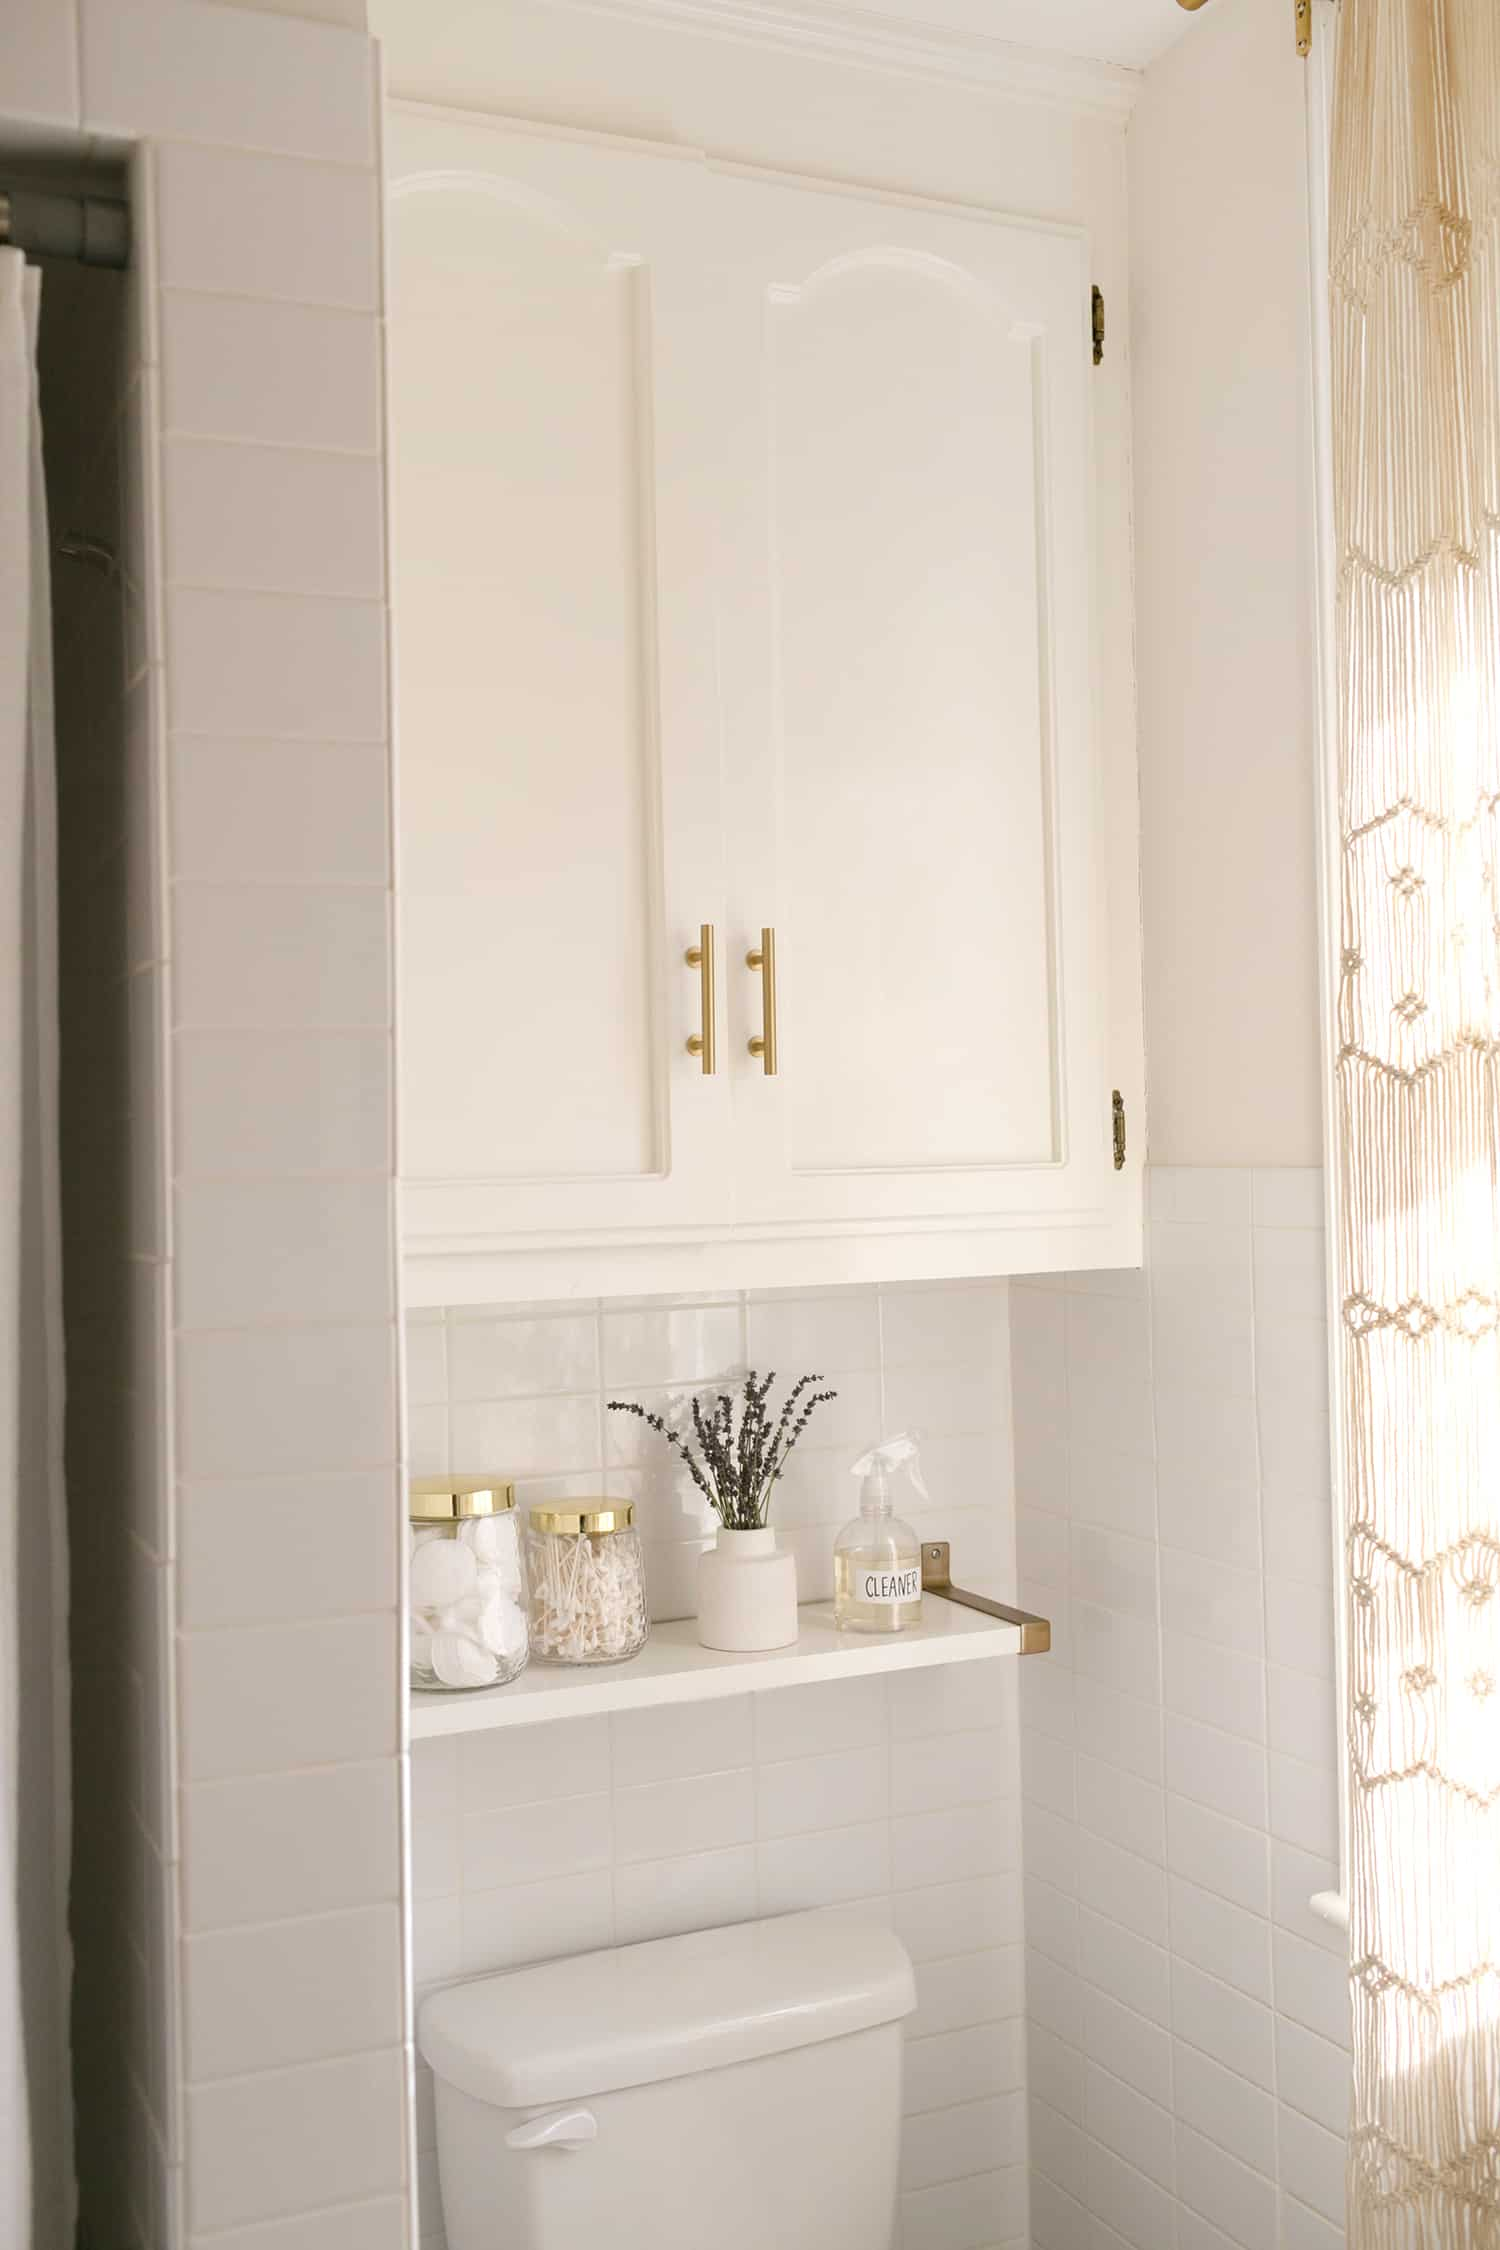 We Continued The Stack Bond Tile From The Shower Around The Toilet Area. We  Kept The Existing Storage Shelves That Came With The House And ...